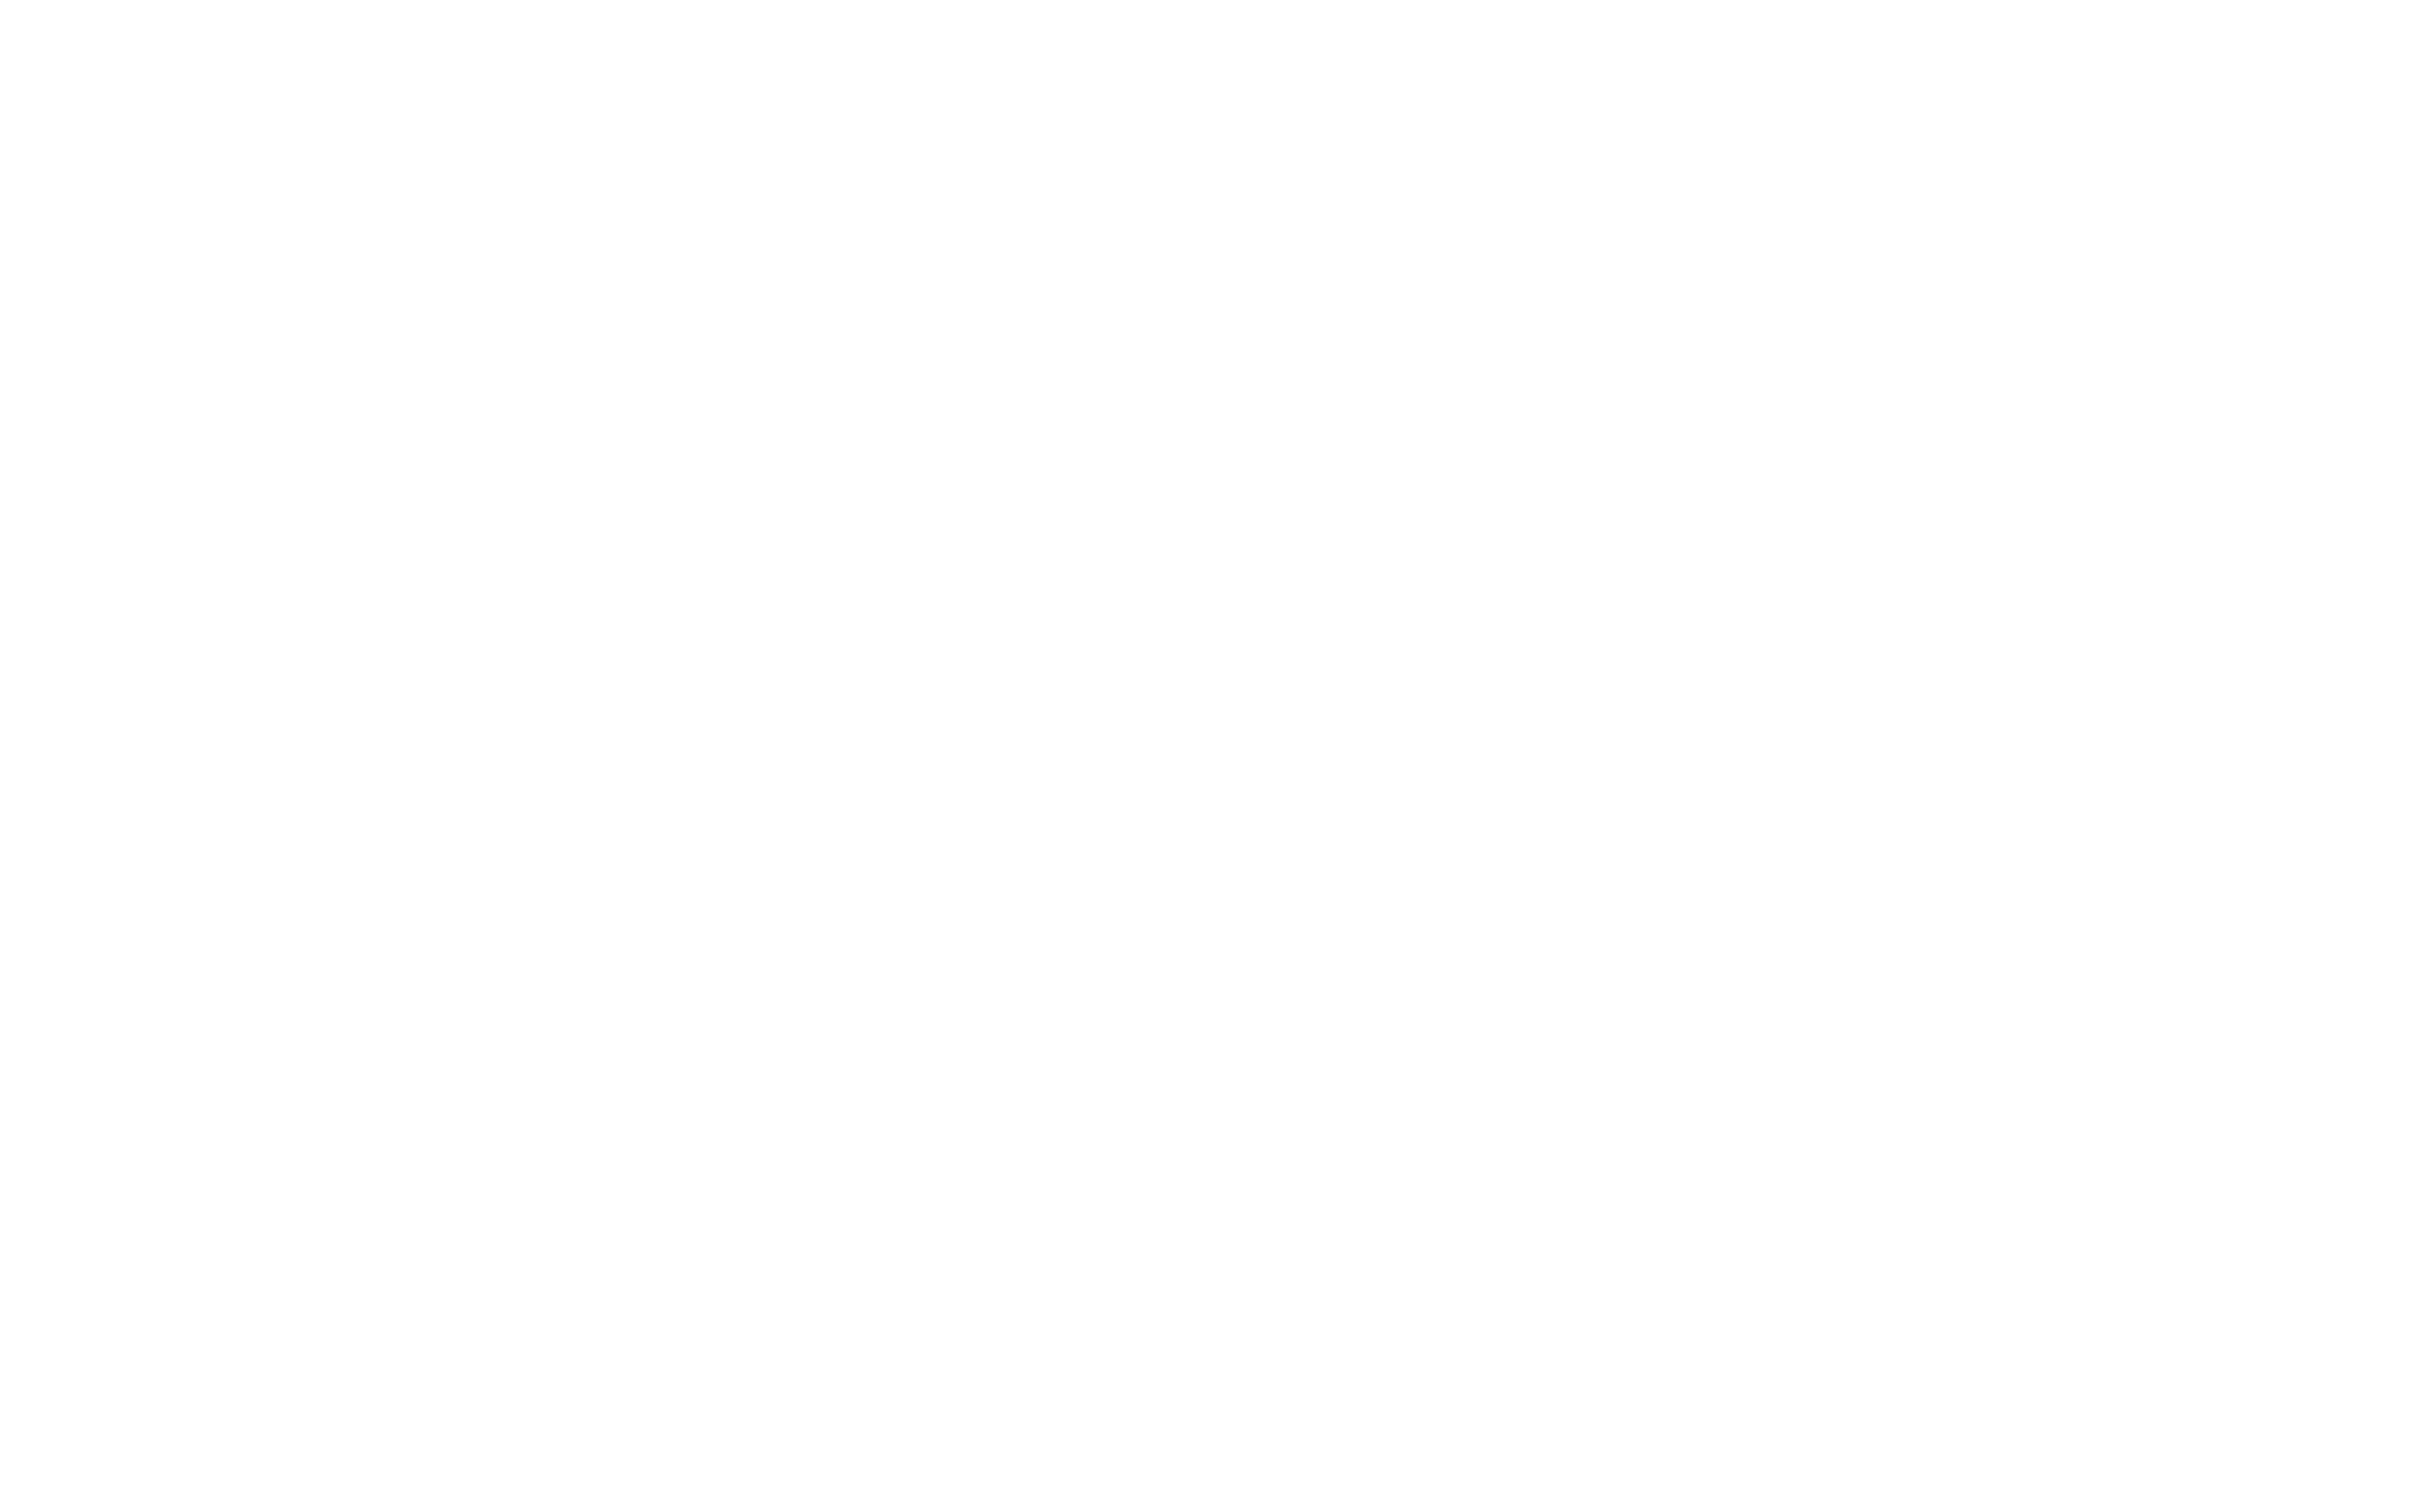 Deadwood icon